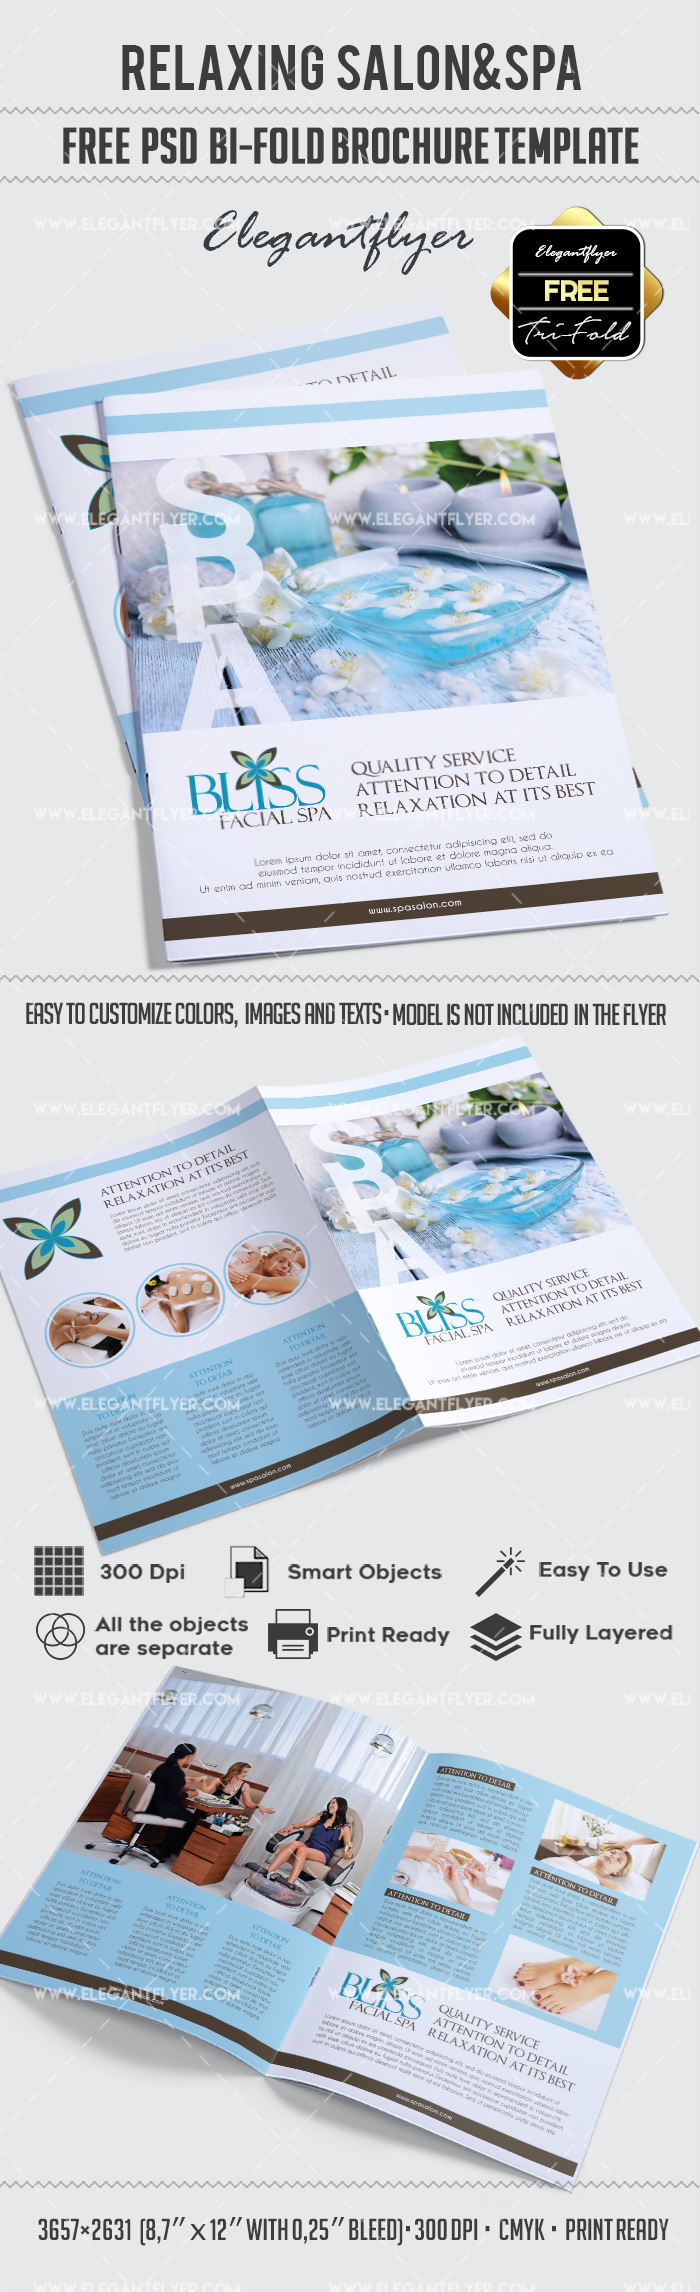 psd brochure template free - free relaxing salon for bi fold psd brochure by elegantflyer